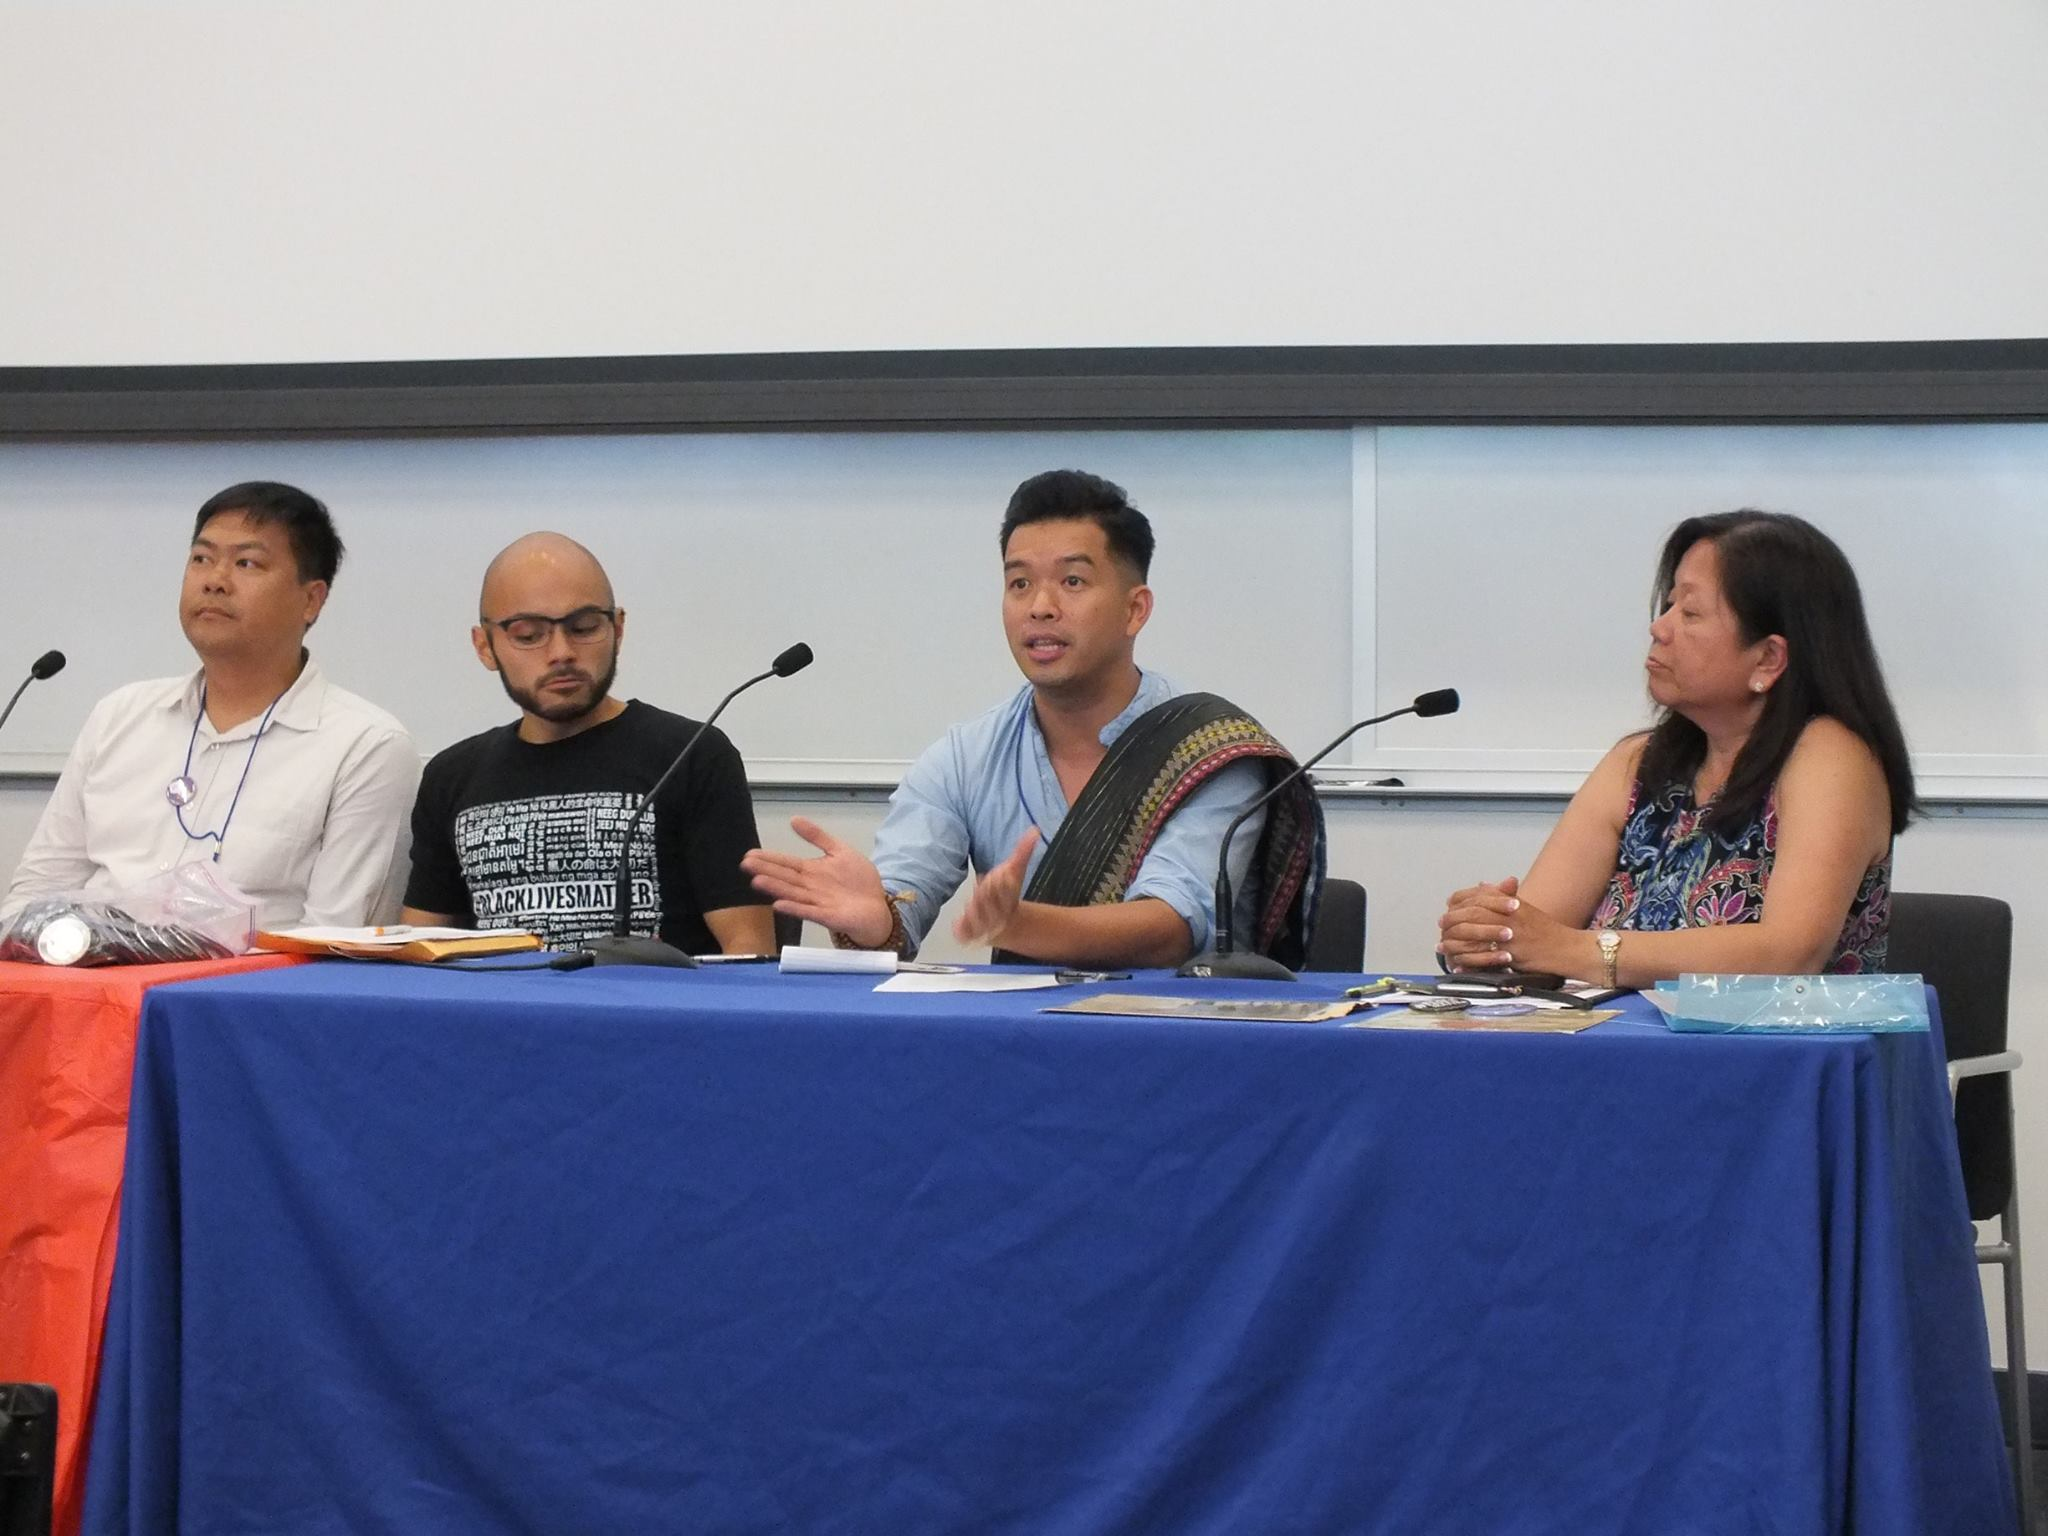 anelists speak on social justice activism in Filipino-American communities at the FANHS conference.